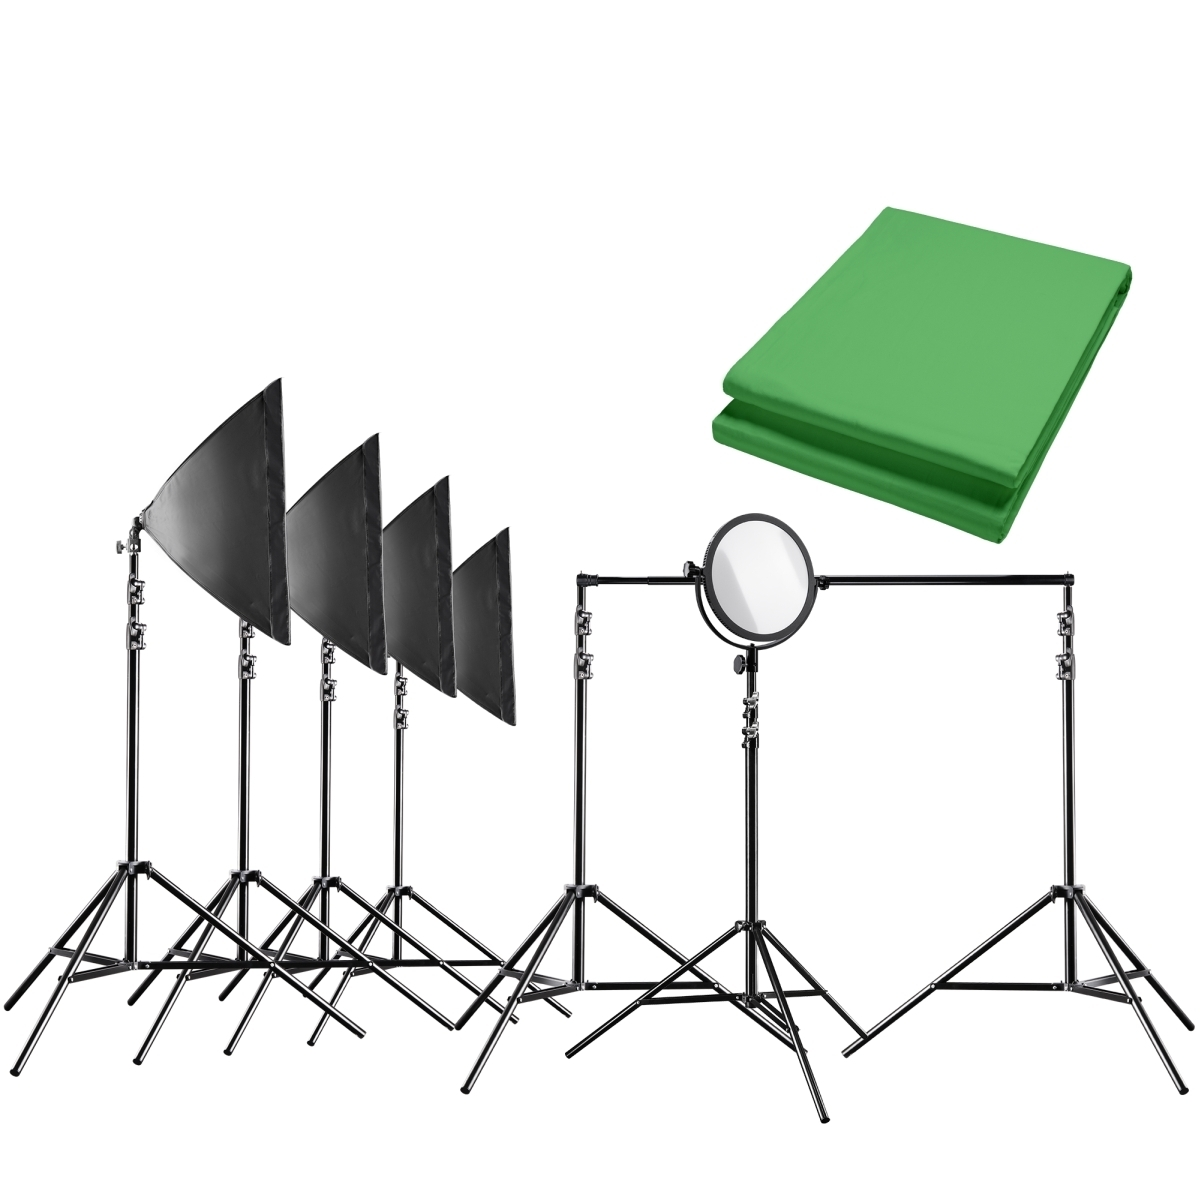 Walimex pro Video Greenscreen Set Profi